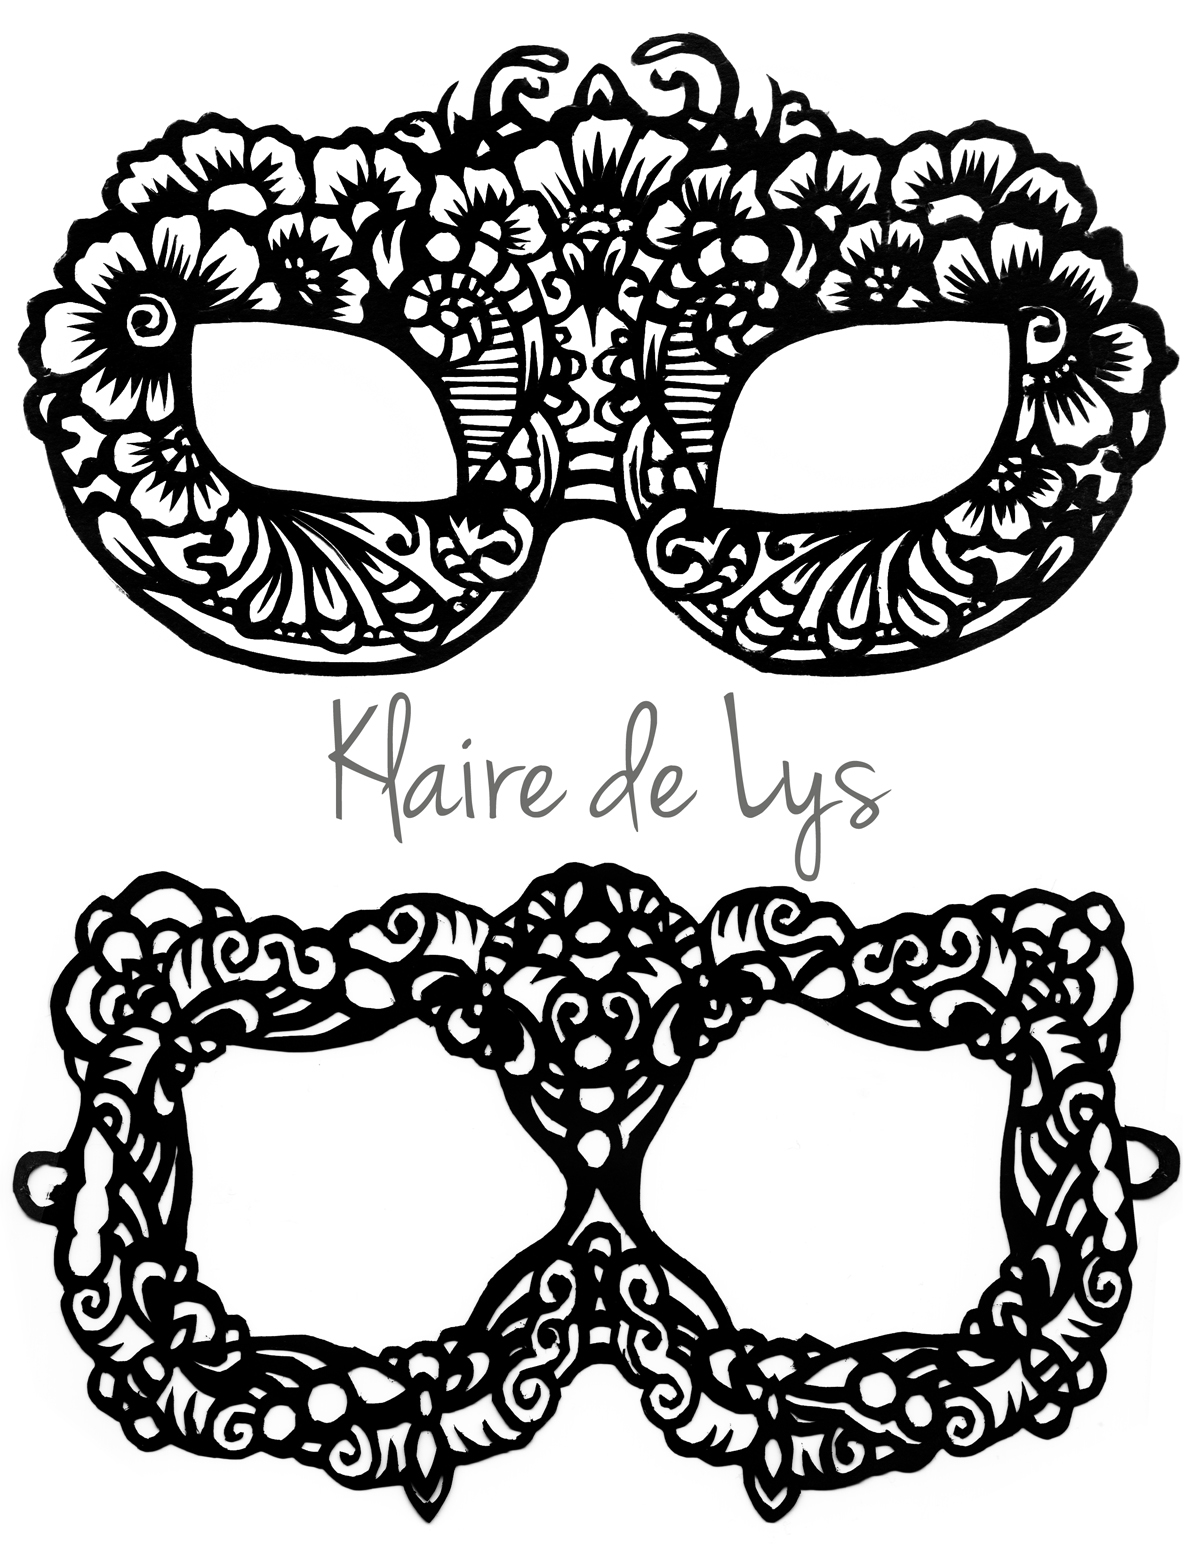 Masquerade mask masquerade mask vine mask metal lace masquerade - Masquerade Mask Template Go Back Gallery For Venetian Masquerade Masks Template Masks Pinterest Masquerade Mask Template Masquerades And